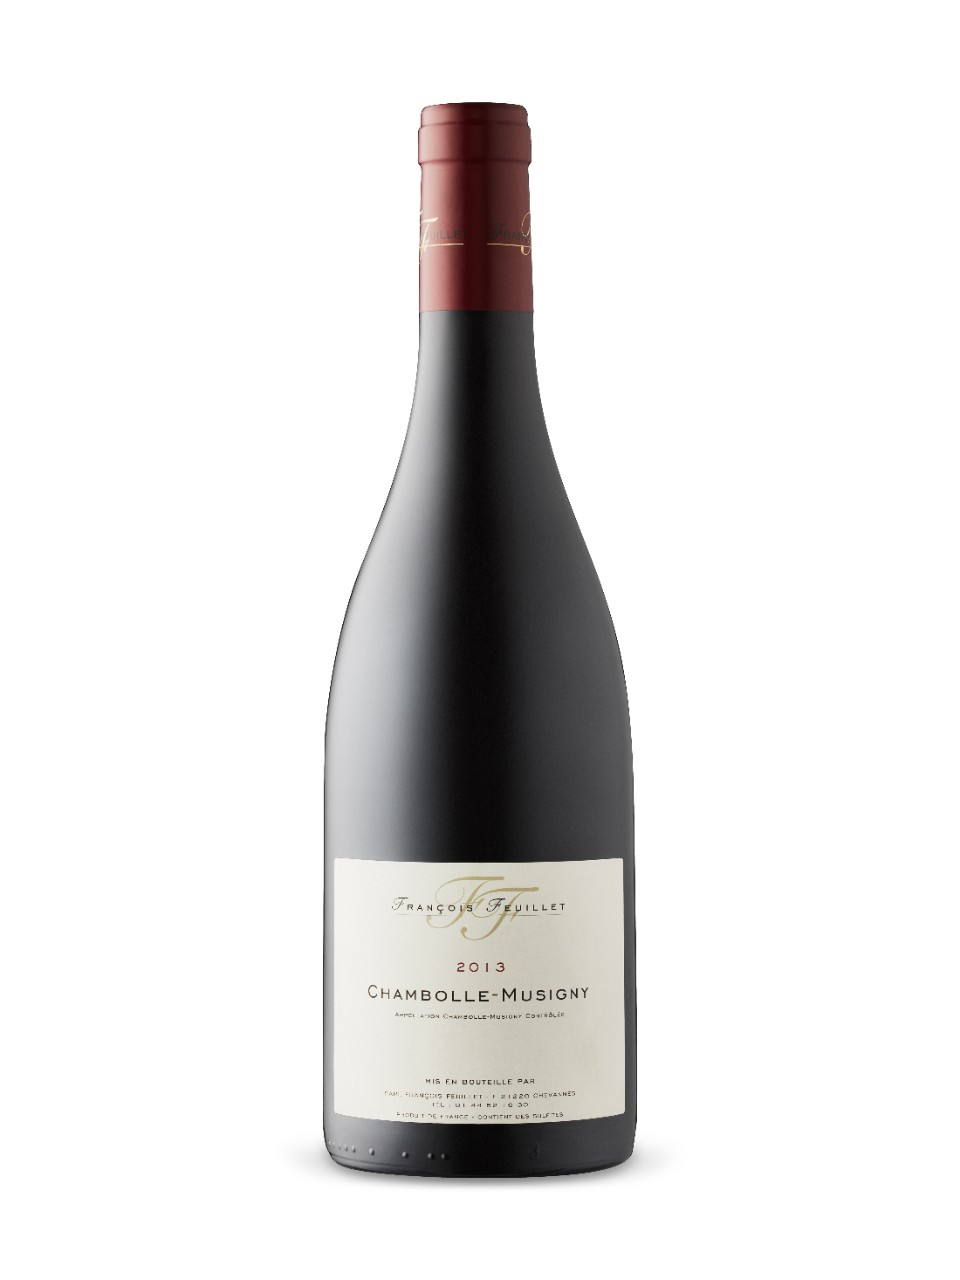 Feuillet Chambolle Musigny 2013